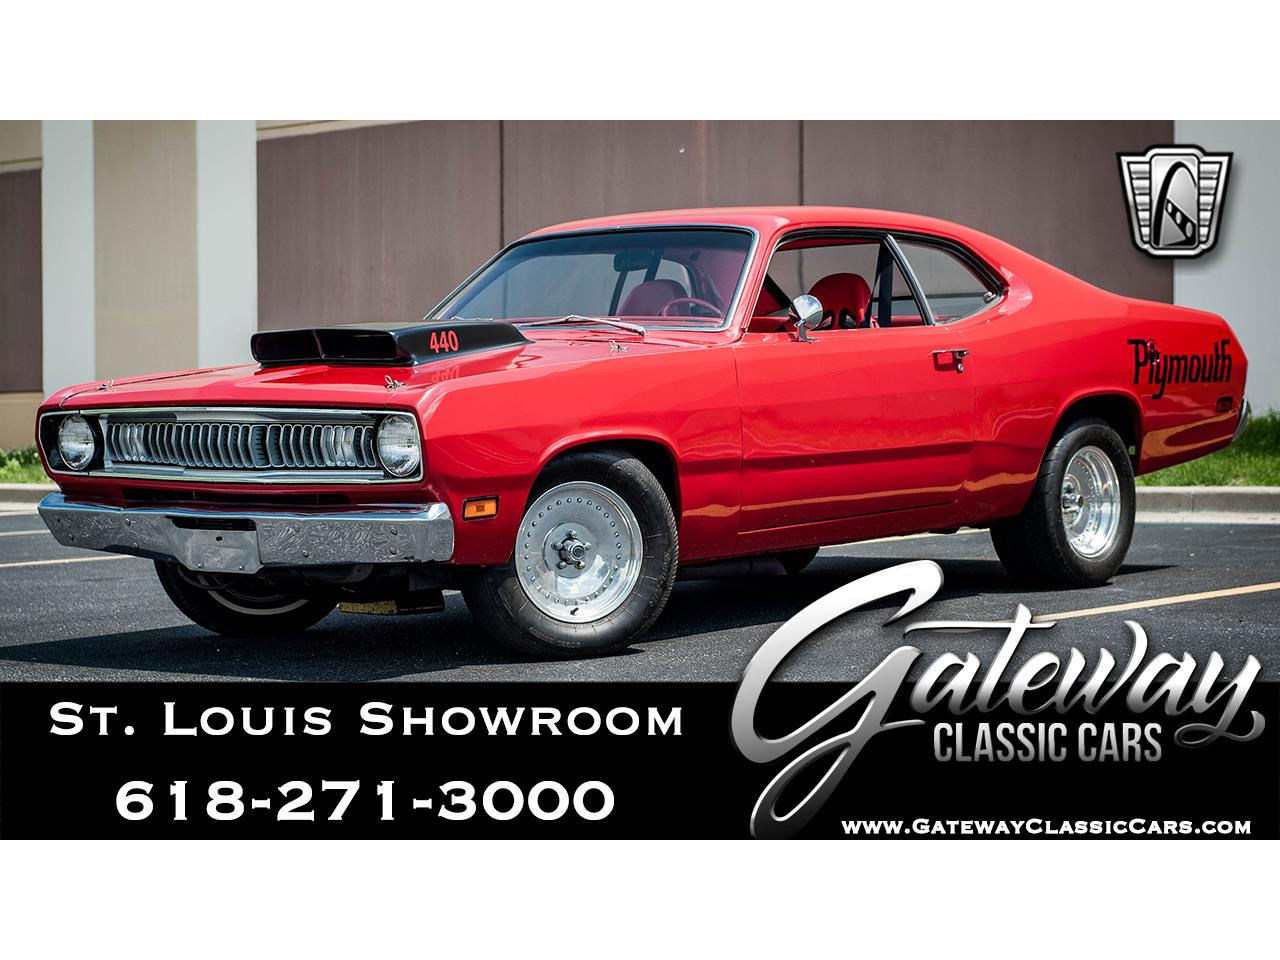 Large Picture of 1971 Plymouth Duster - $30,000.00 Offered by Gateway Classic Cars - St. Louis - QB9U